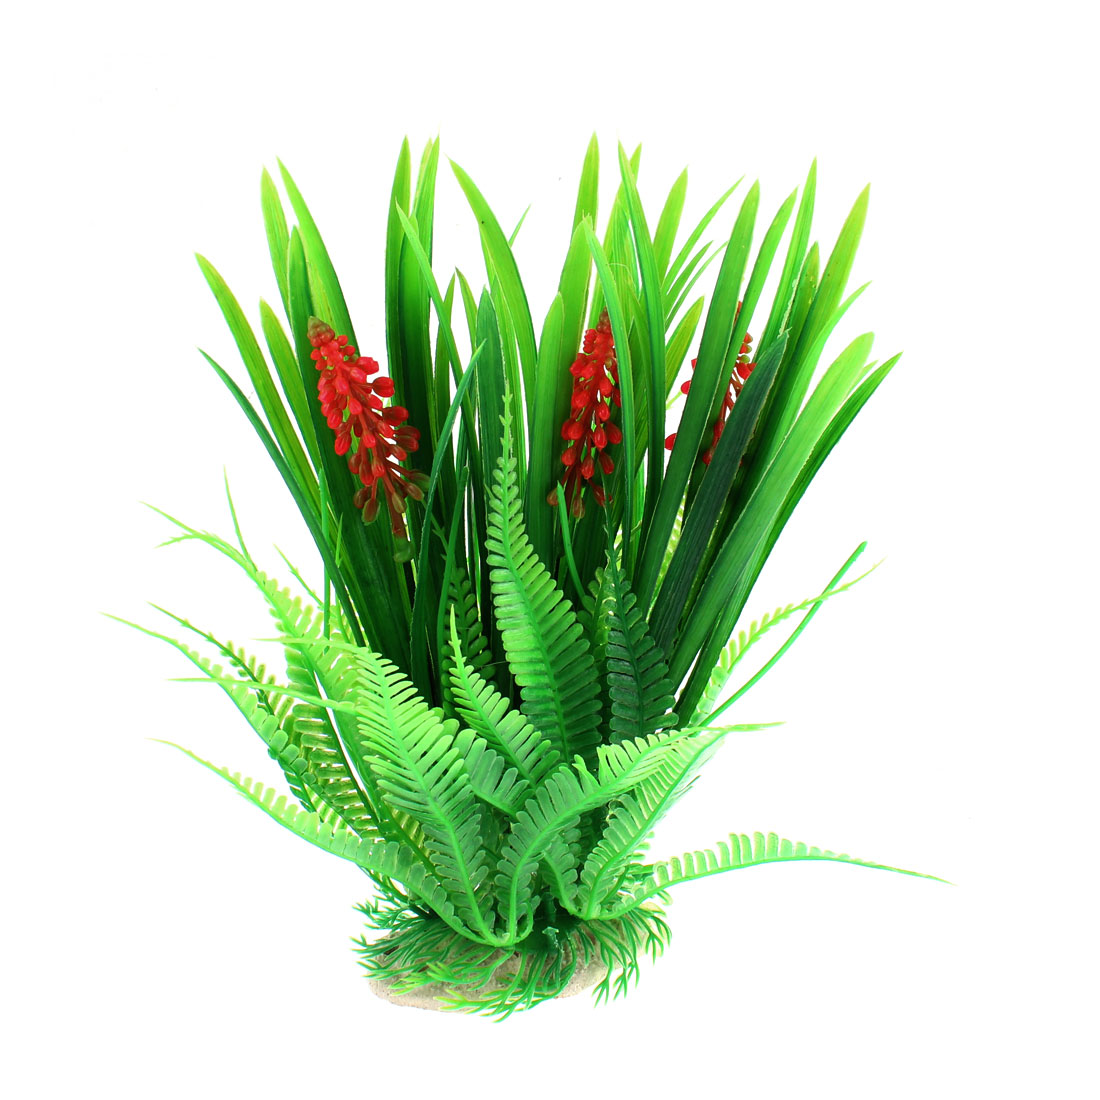 Aquarium Fish Tank Artificial Water Plant Grass Decoration Green 23.5cm Height